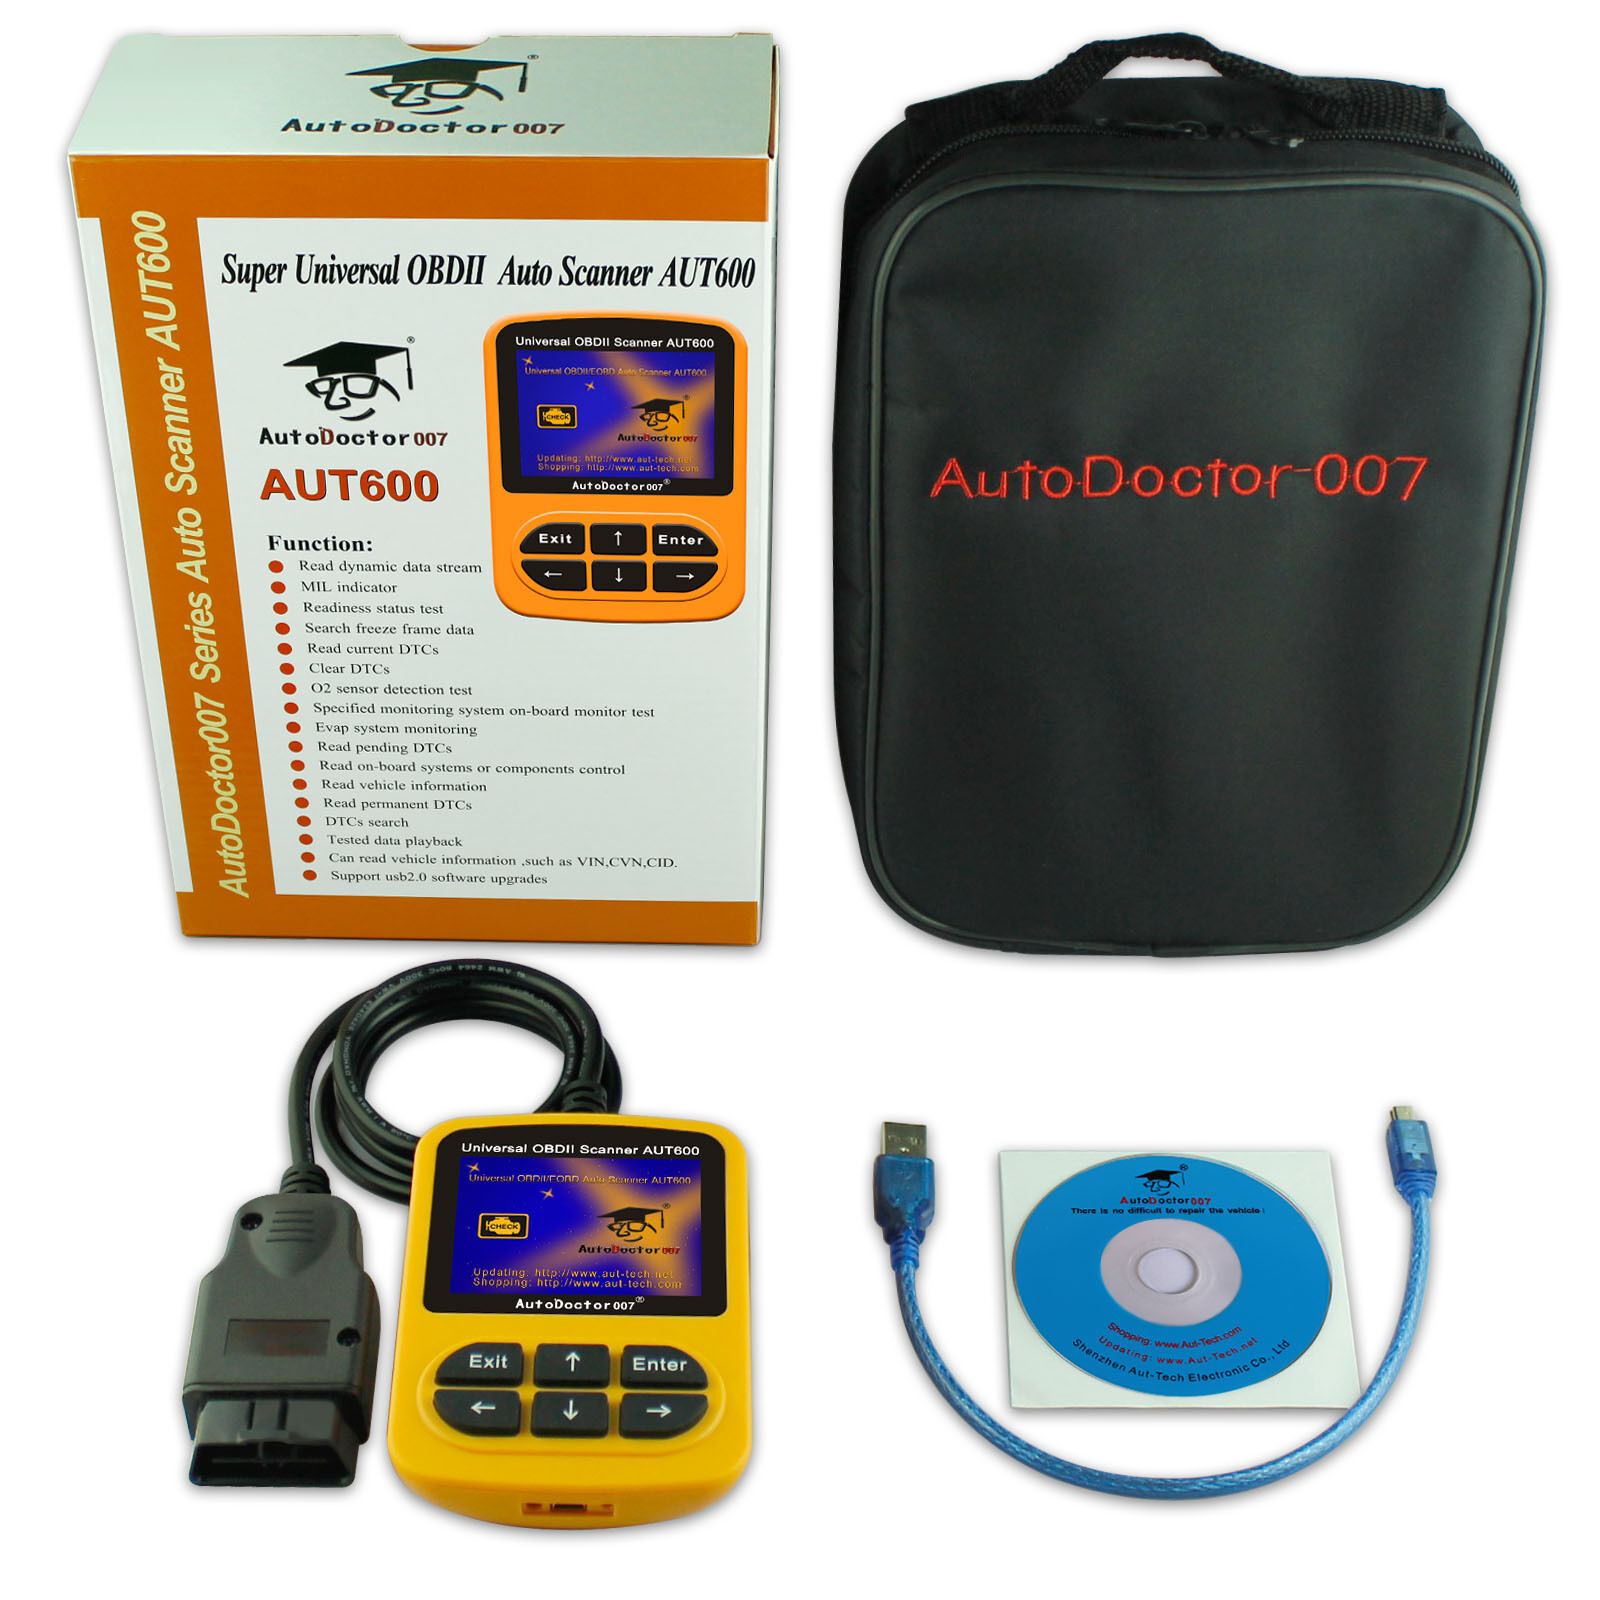 Universal AutoDoctor007 AUT600 OBD2 Reader Read Dynamic Data Stream for EOBD Car